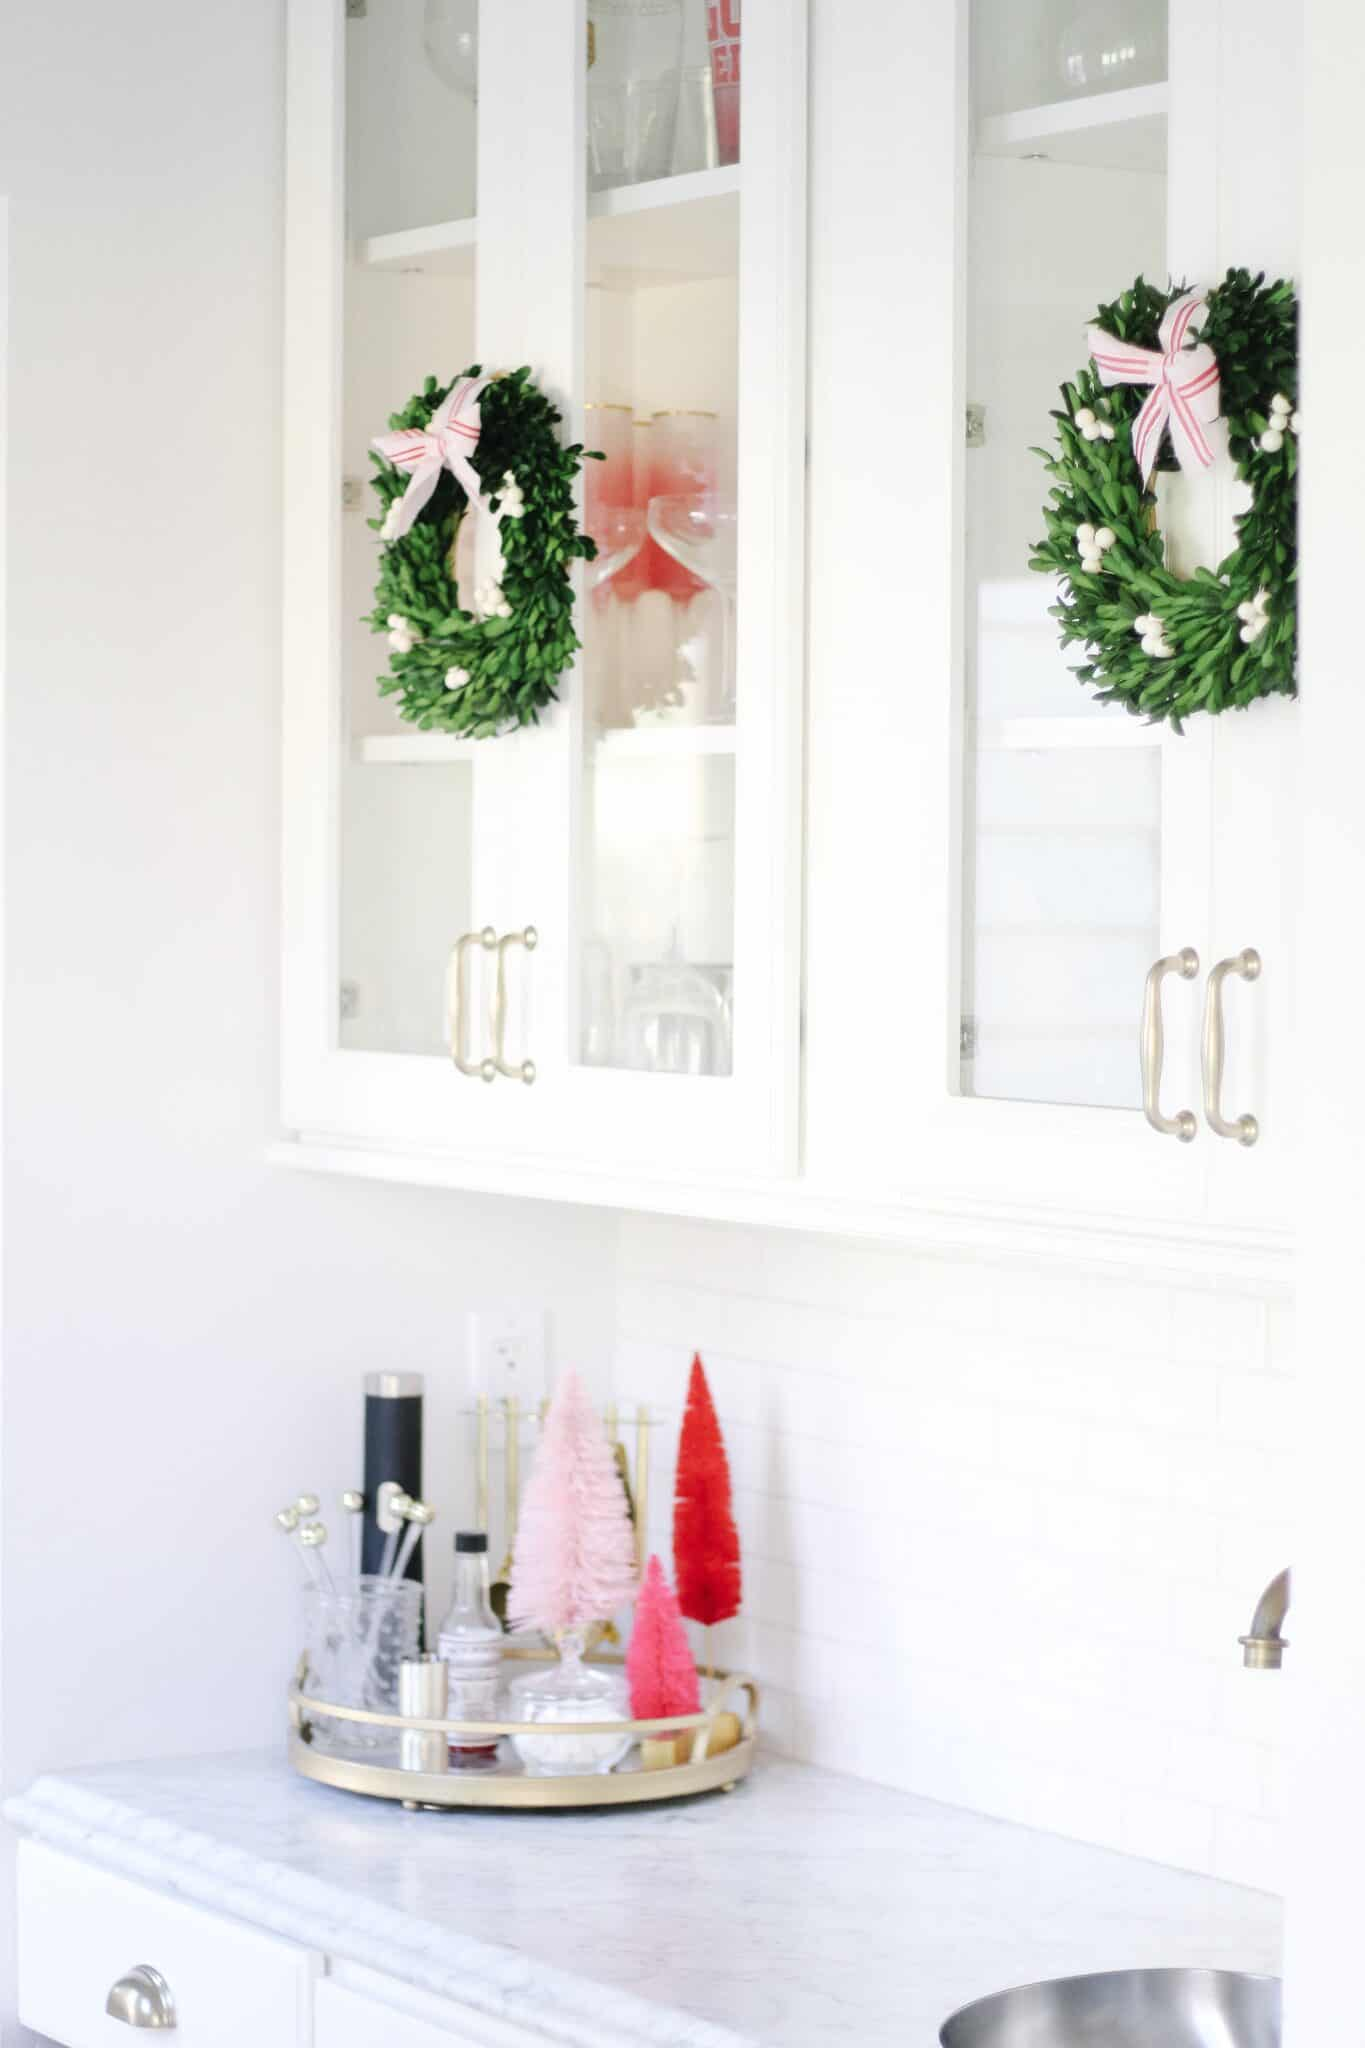 Boxwood wreaths on white kitchen cabinets